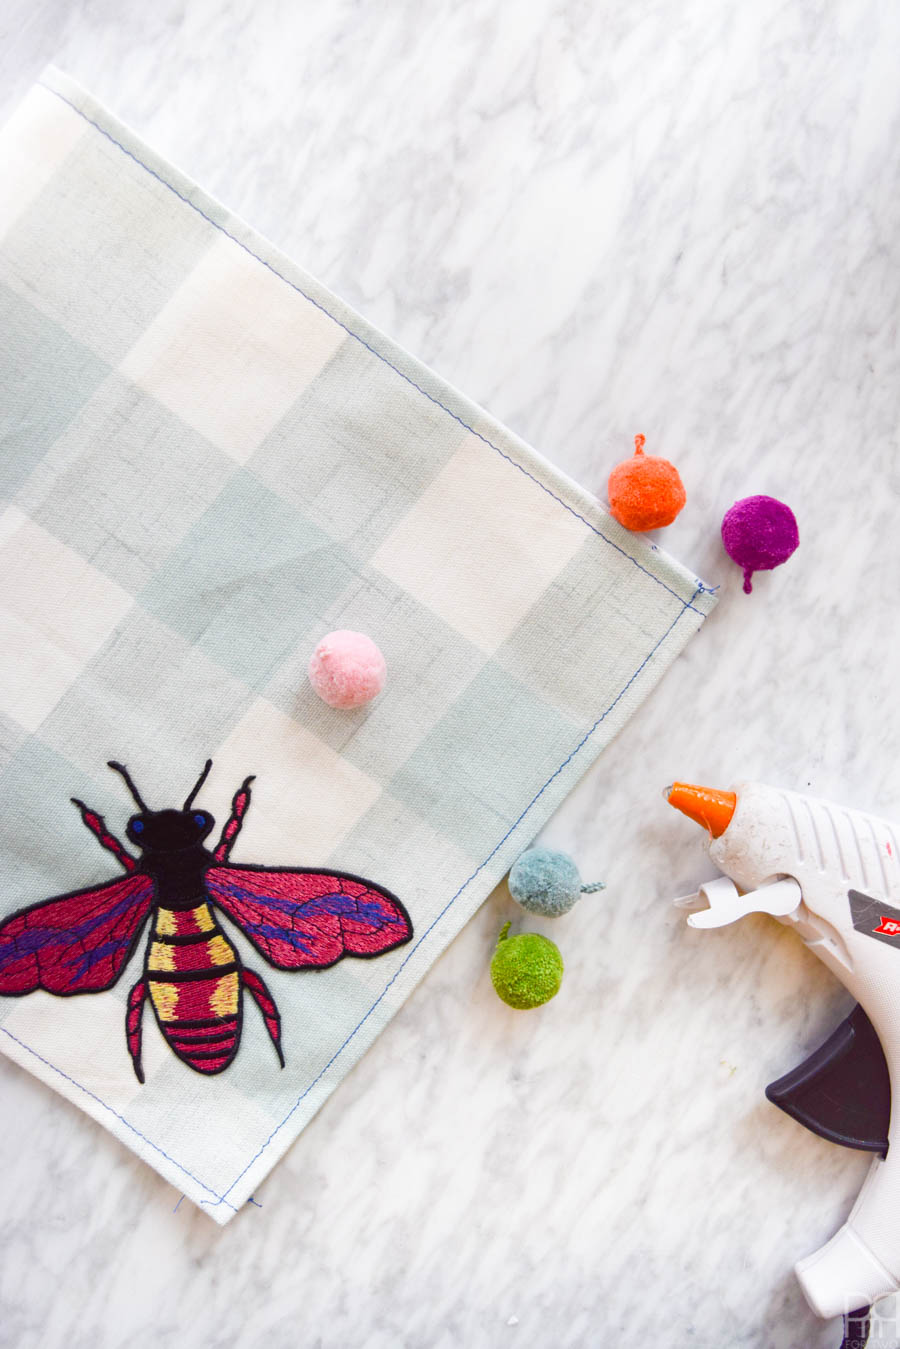 Inspired by the hit runway fashion trend, these DIY Gucci Inspired Tea Towels are easier to make than you'd think! Grab some fun fabric prints and these affordable iron-on patches, and you're ready to go!